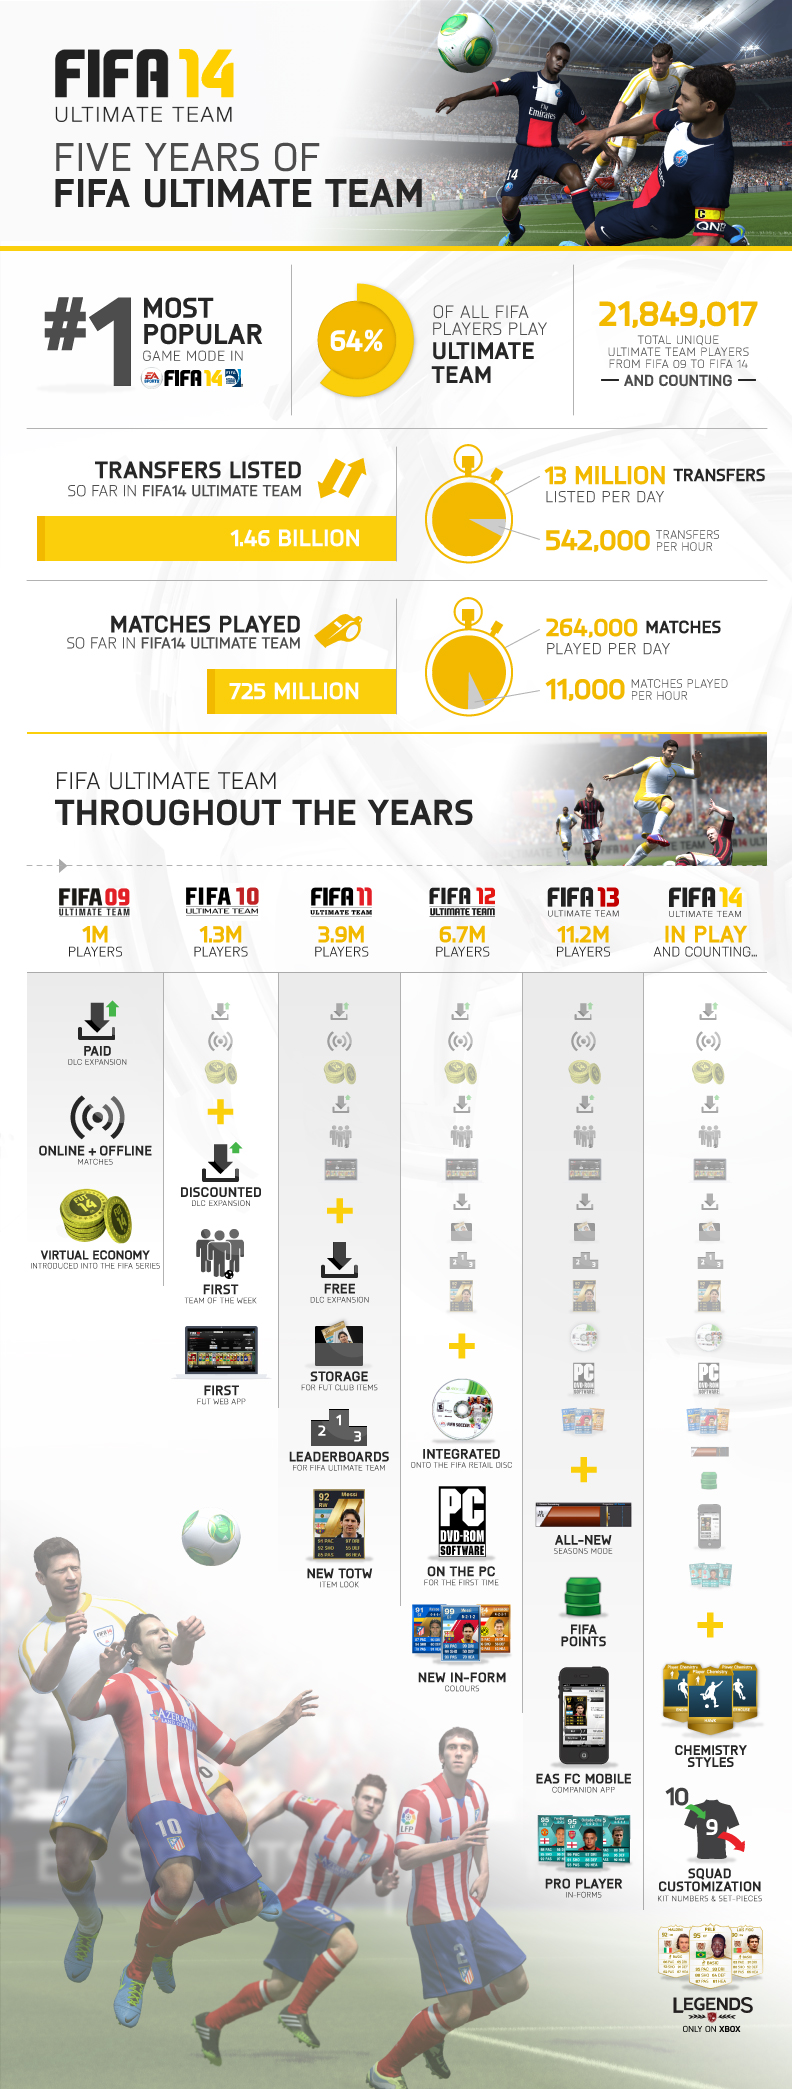 FIFA-Ultimate-Team-5-Year-Infographic-01